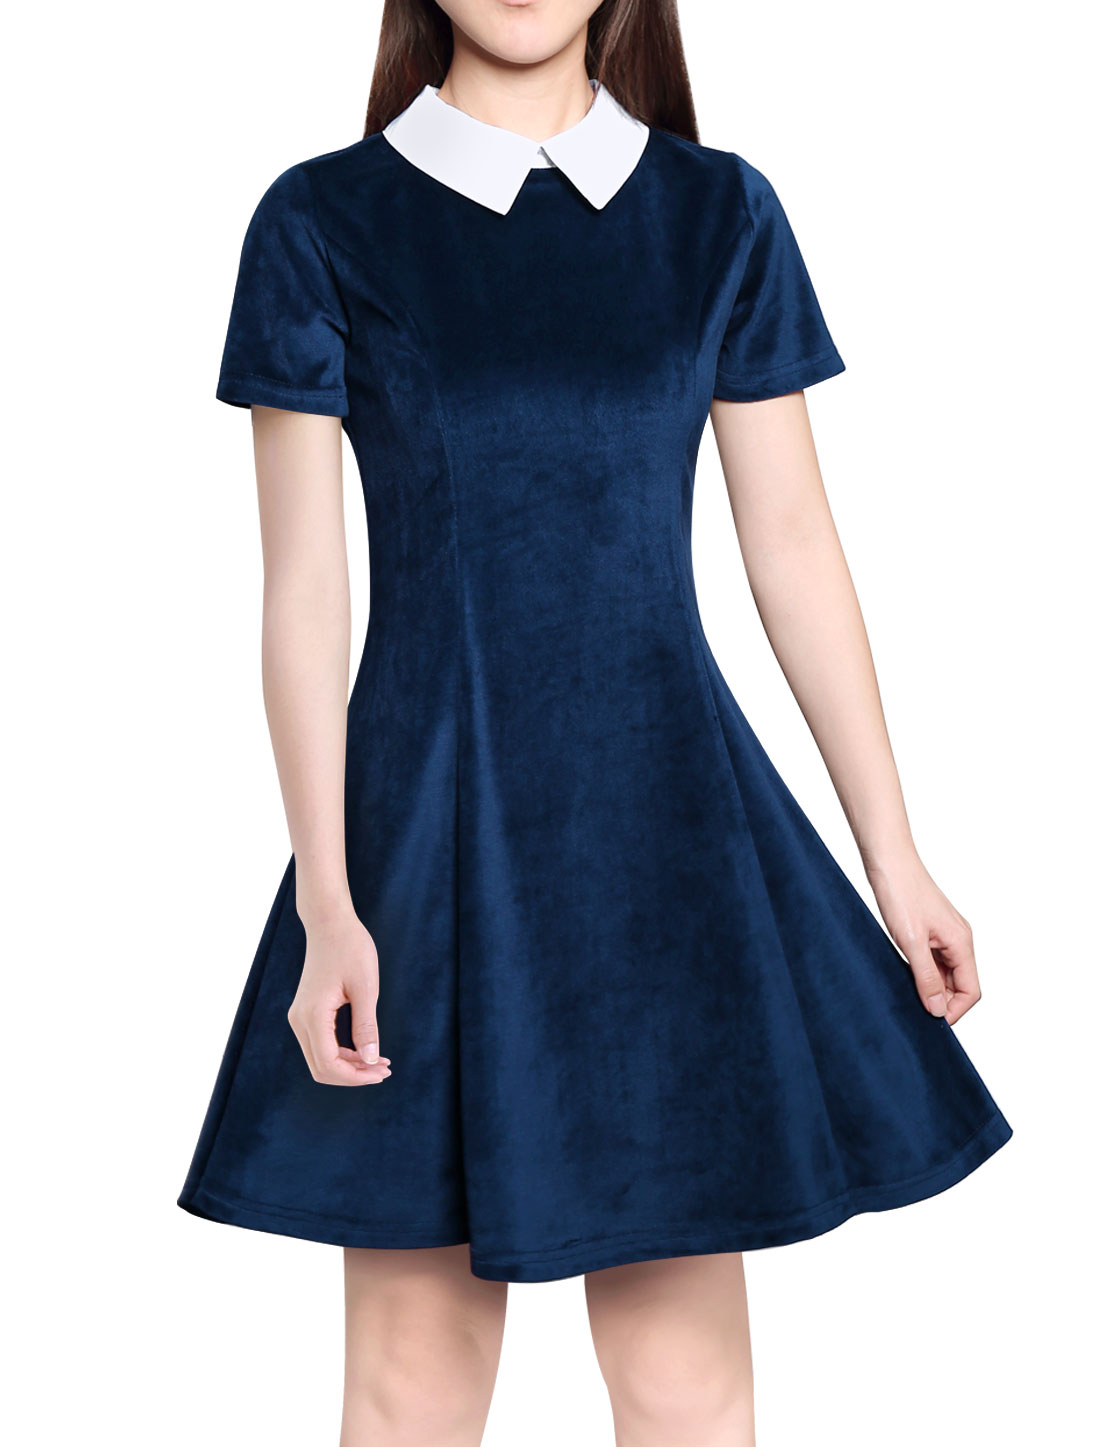 Allegra K Women Contrast Doll Collar Fit and Flare Dress Blue M